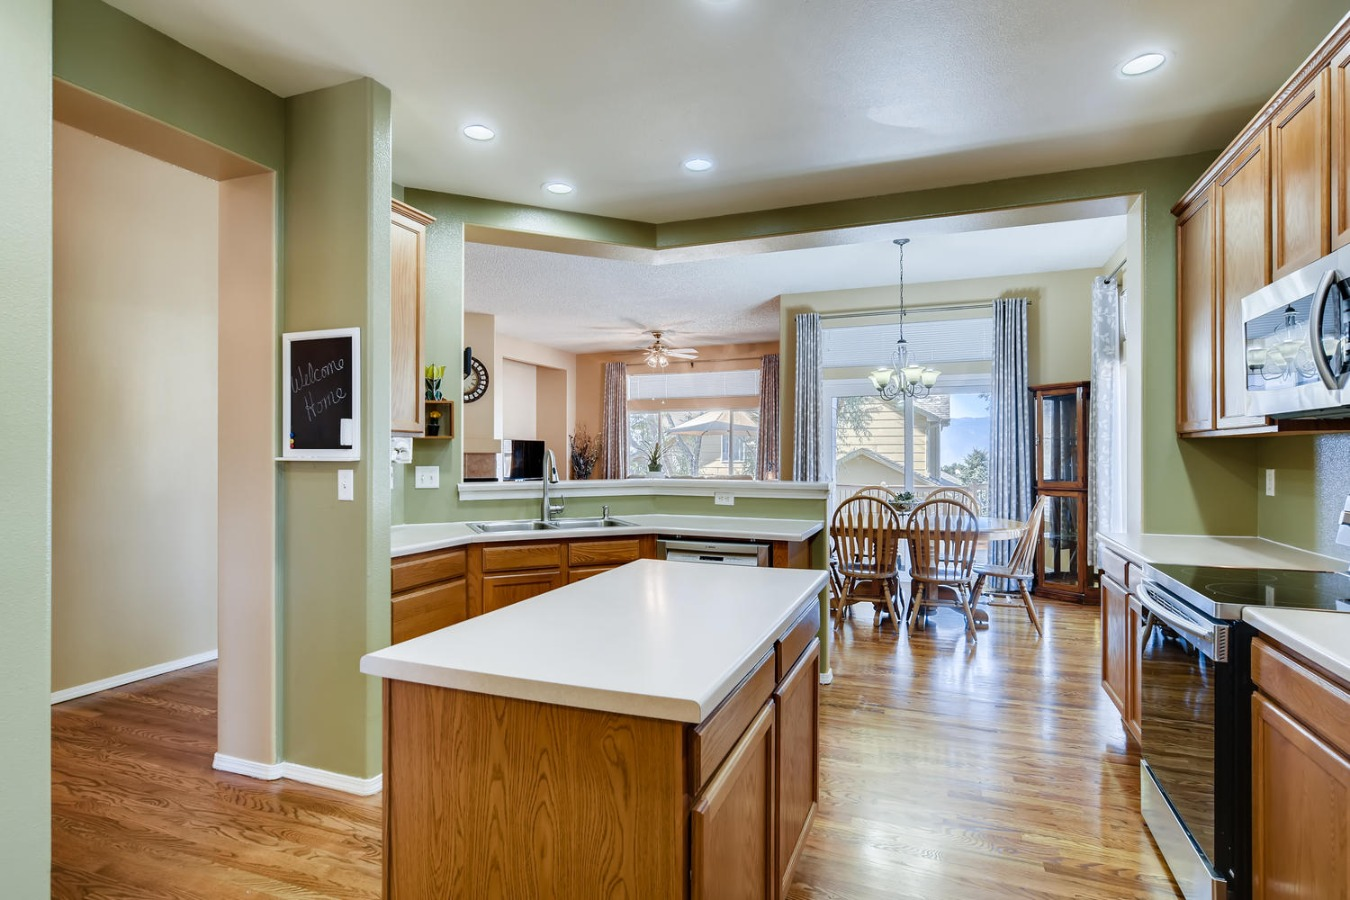 View of kitchen island and dining room area